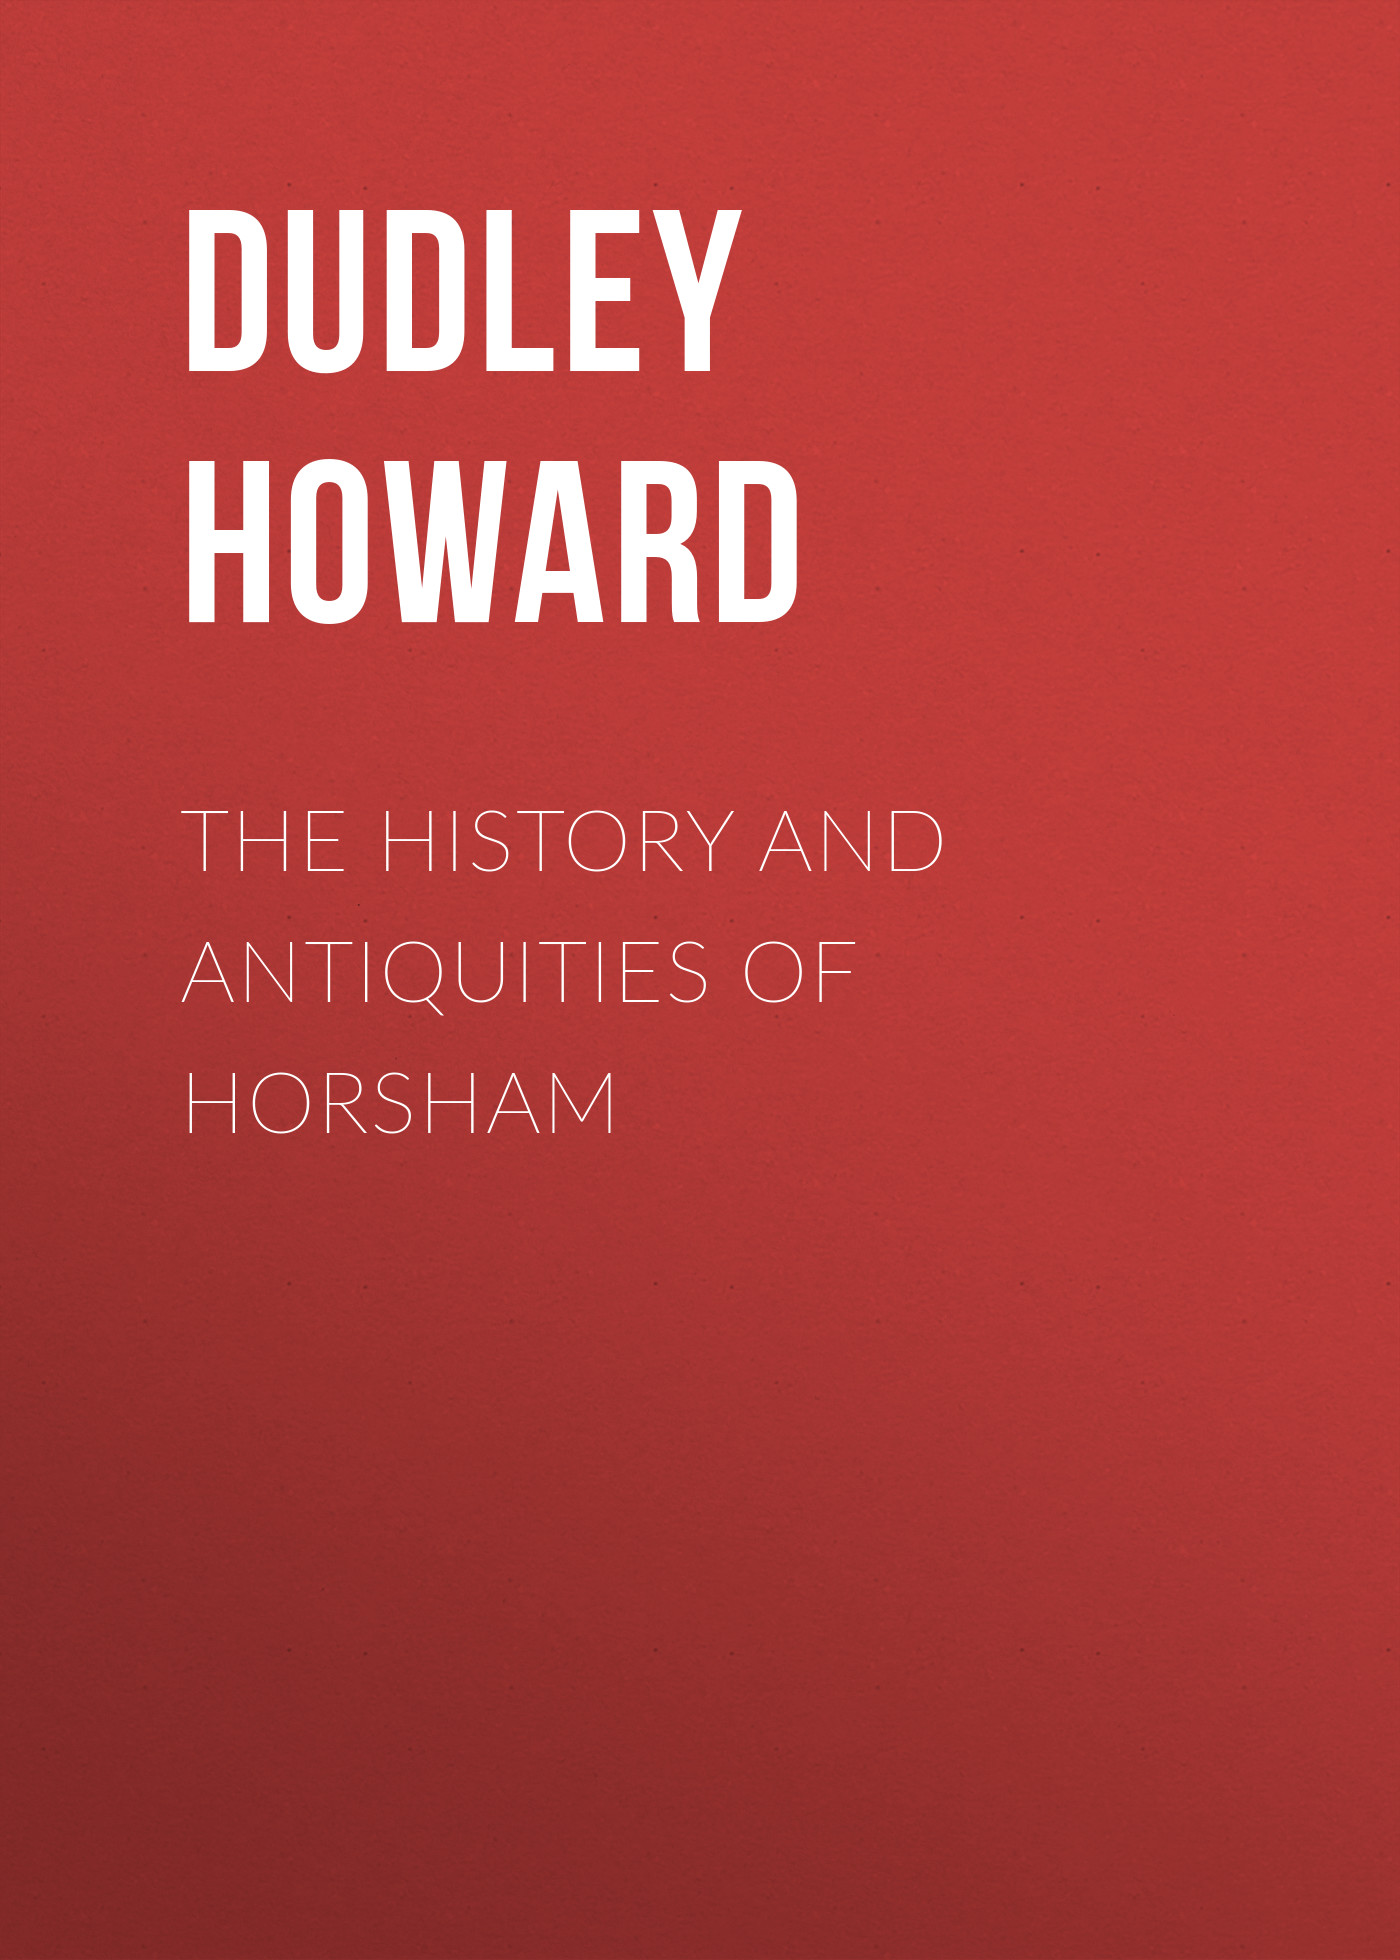 Dudley Howard The History and Antiquities of Horsham roman antiquities – books iii